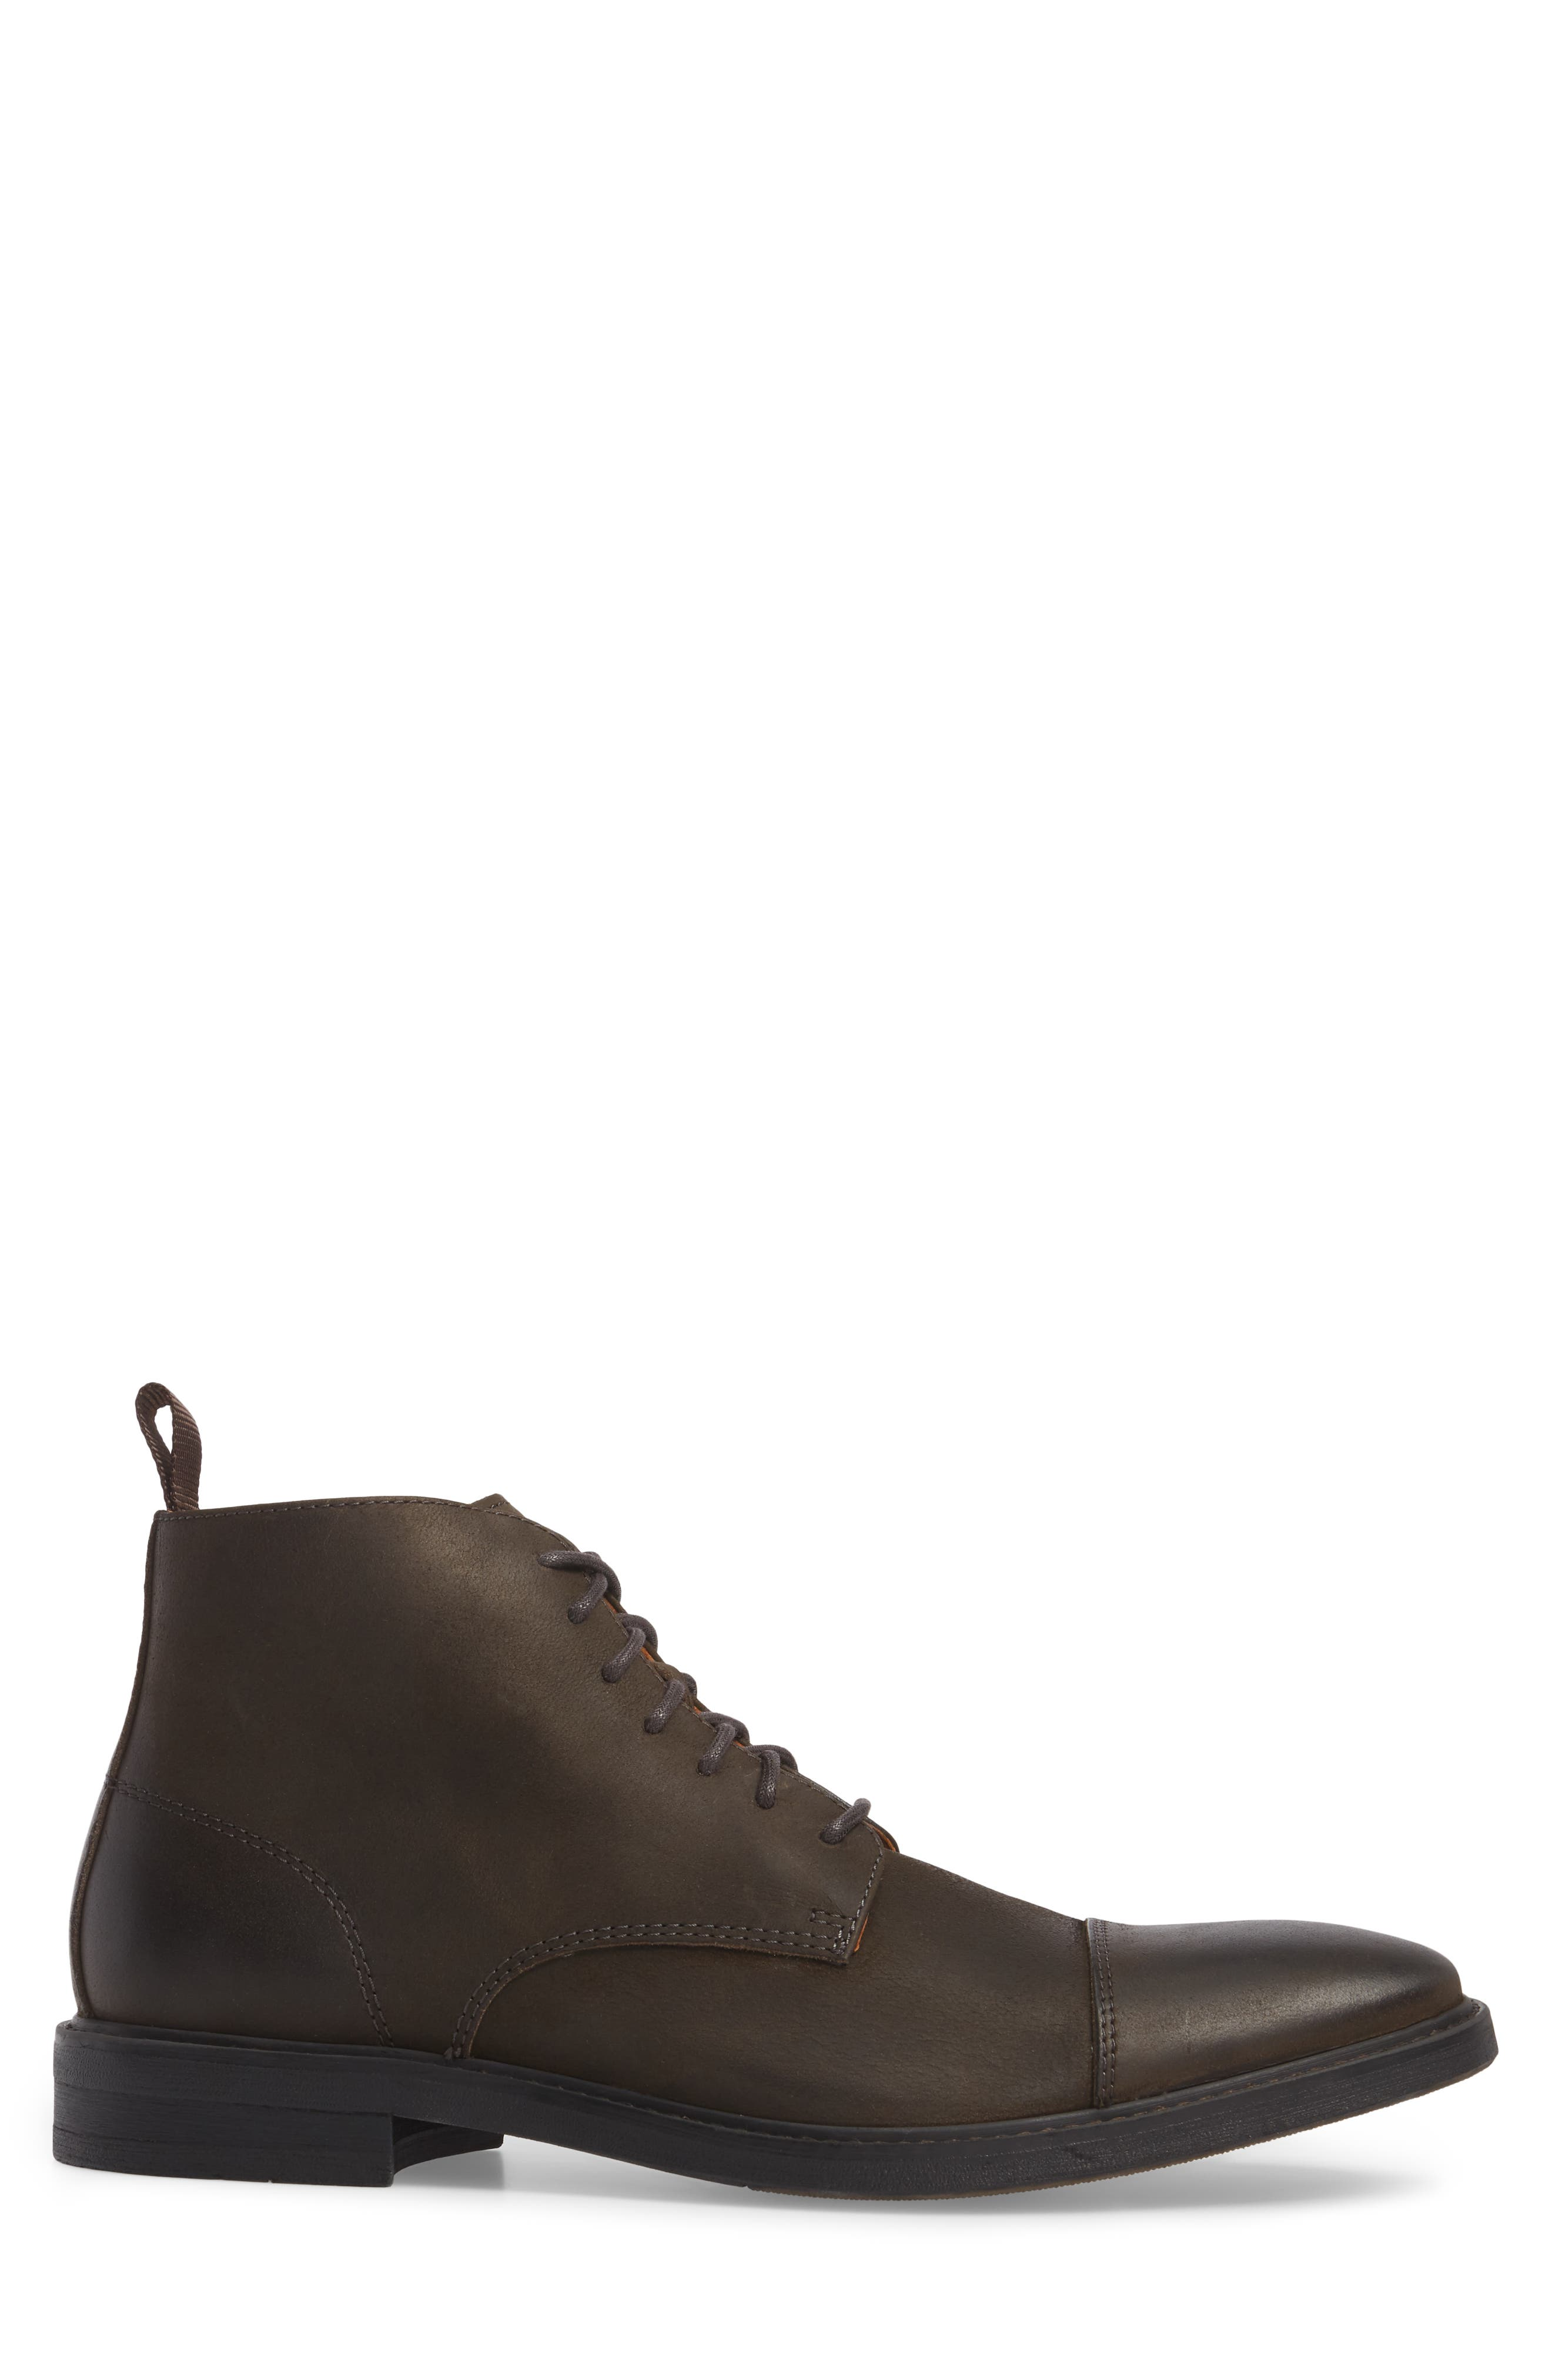 Pateros Cap Toe Boot,                             Alternate thumbnail 3, color,                             Chocolate Leather